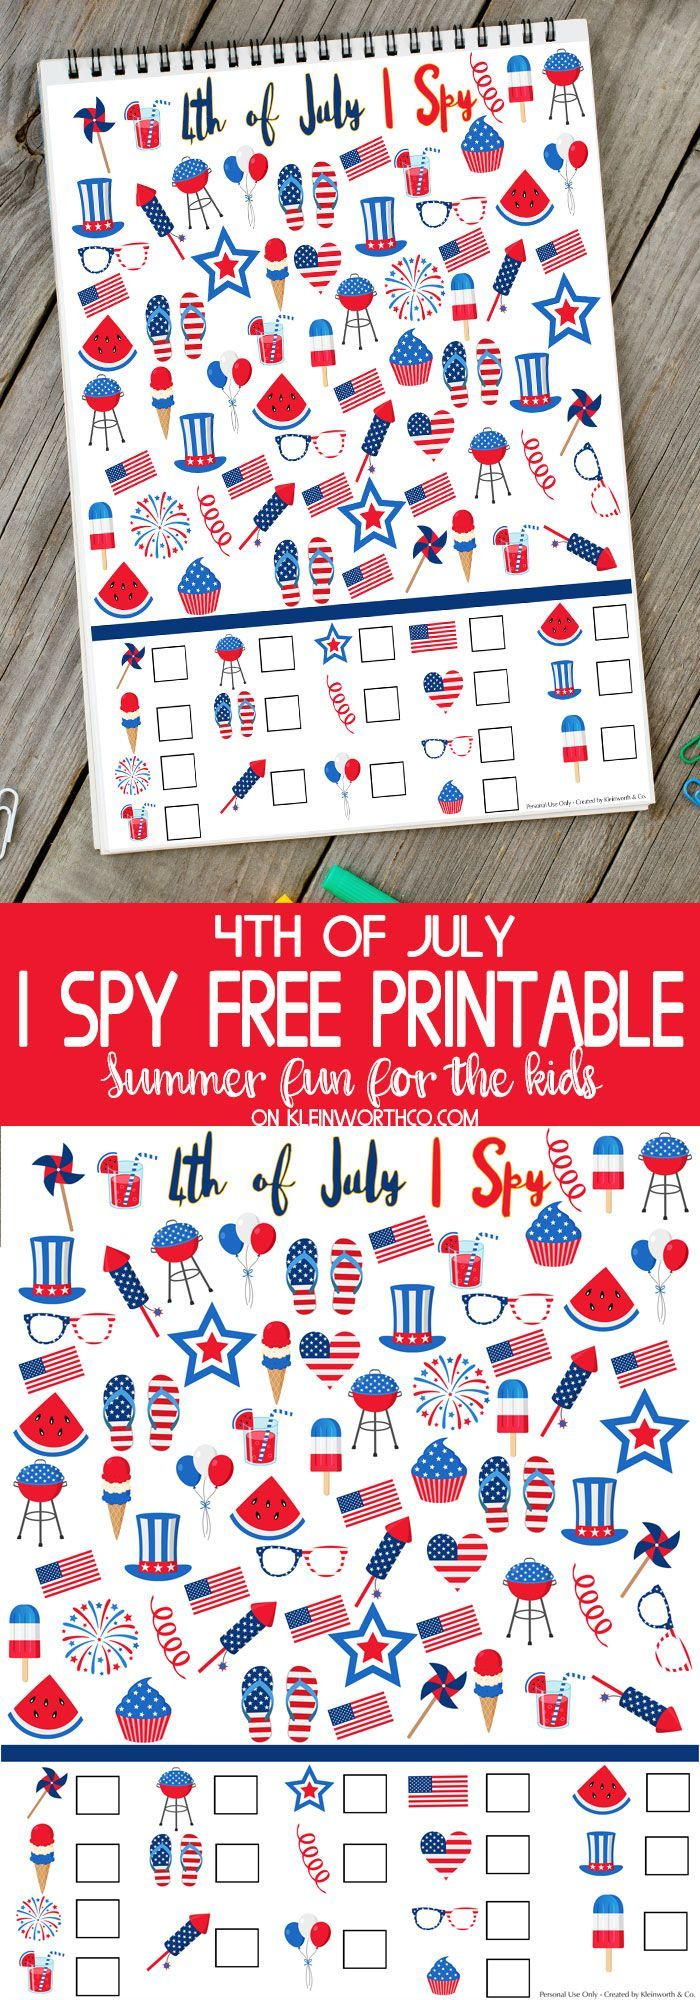 4th of July I Spy Printable - FREE printable to keep the kids busy while they wait for the fireworks this Independence Day. Fun Holiday kids activity! via @KleinworthCo